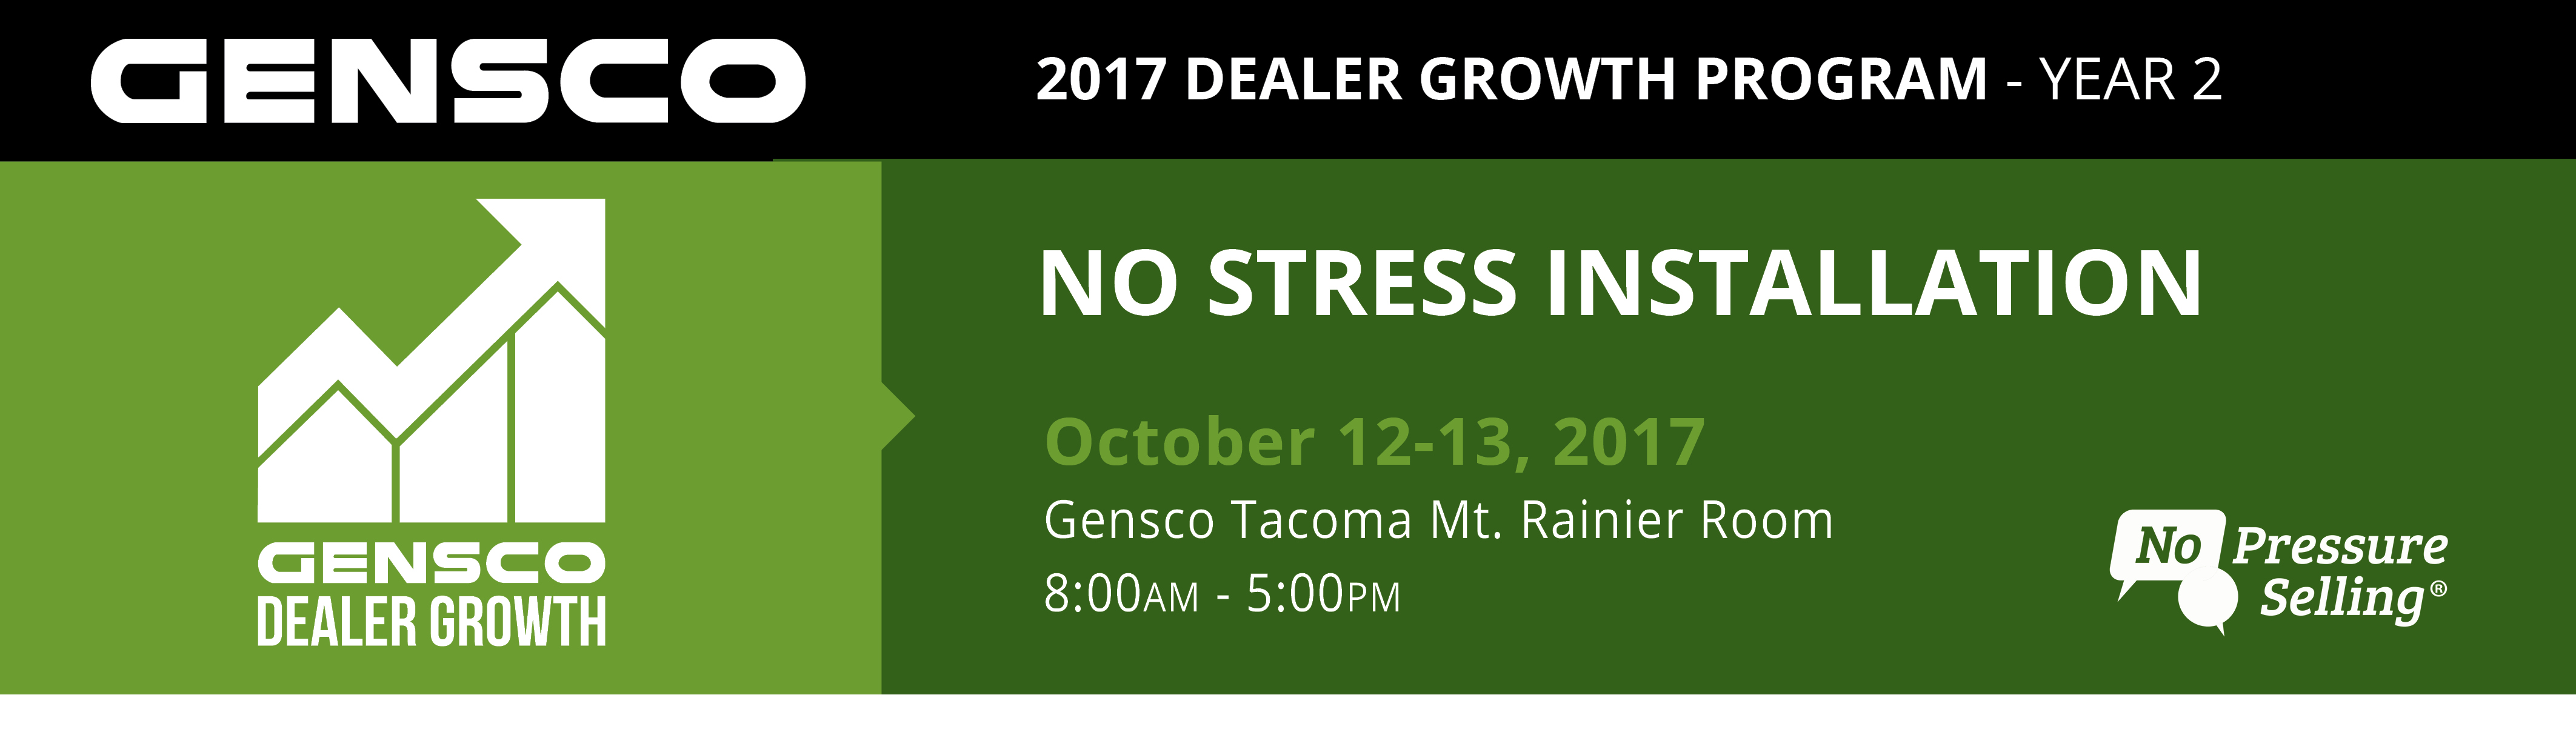 2017 Dealer Growth Headers6